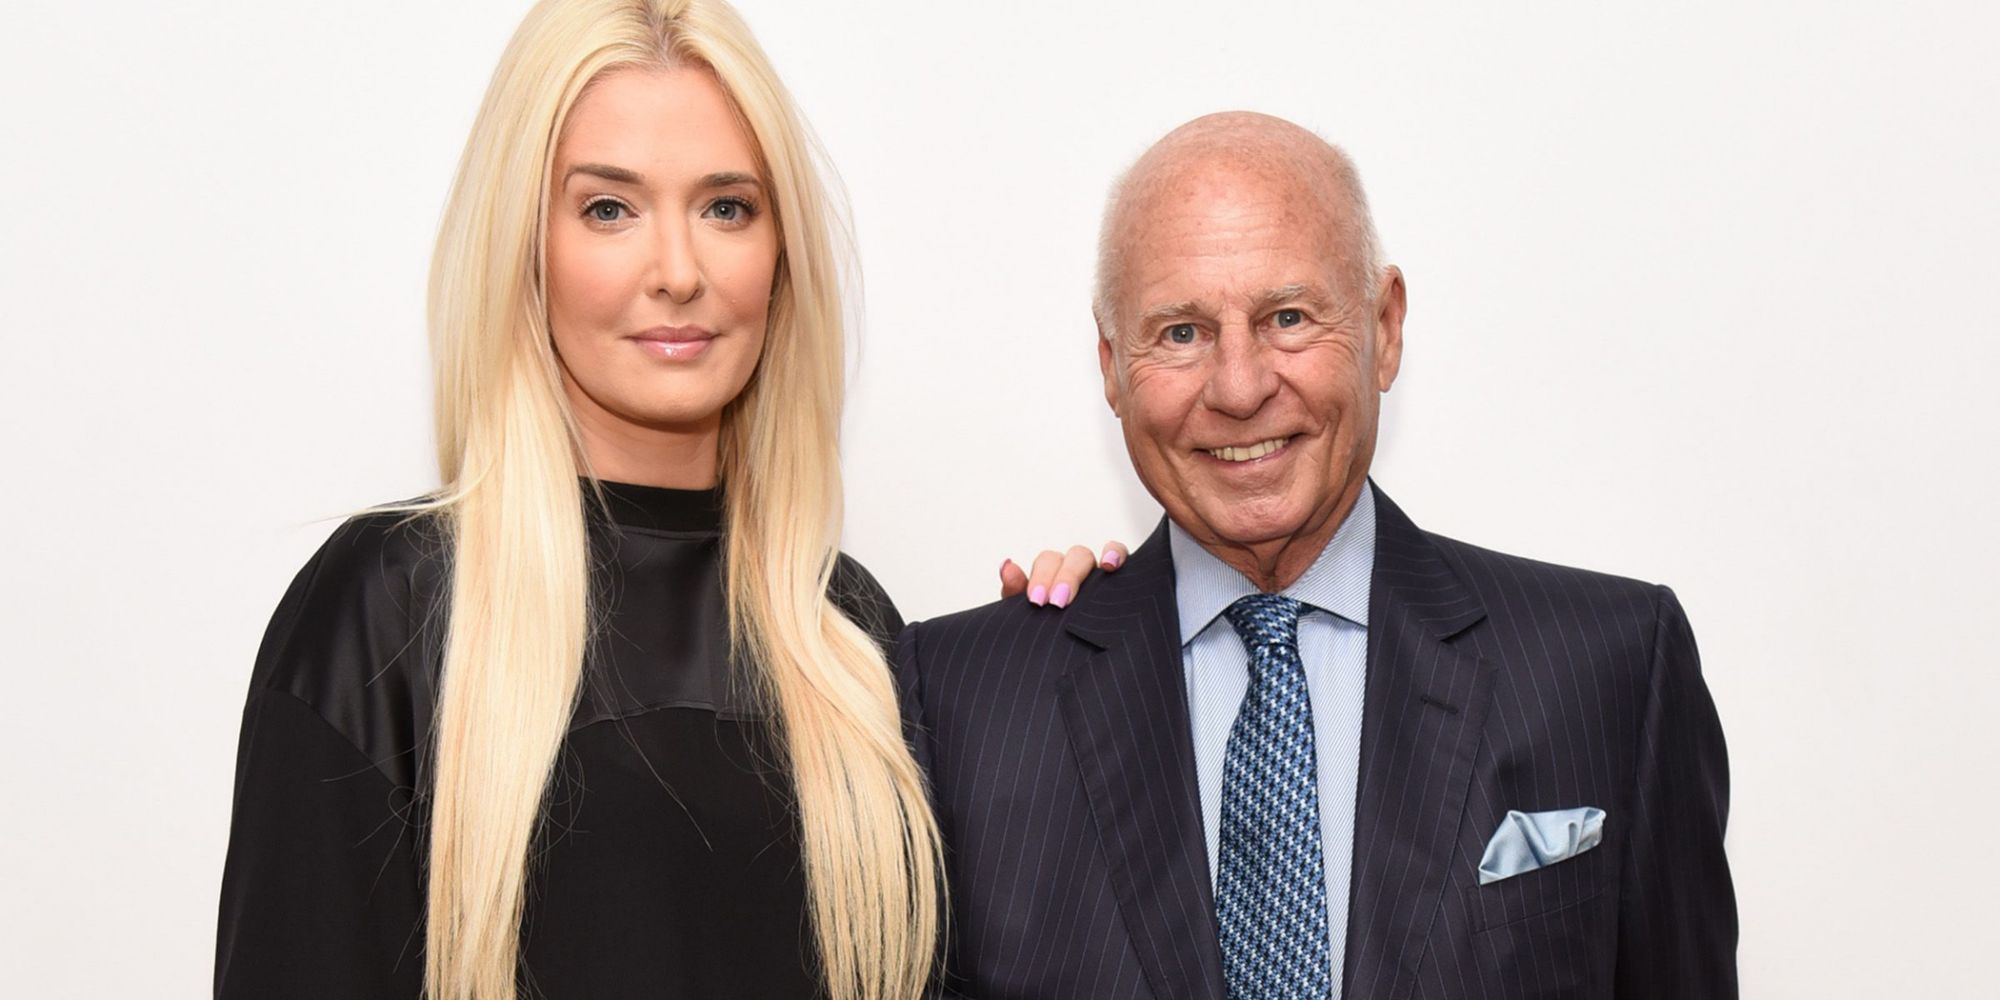 Erika Girardi and Thomas Girardi attend The Sherman Brothers Disney Music - The 7th Annual Concert Extraordinaire - Los Angeles Lawyers Philharmonic on June 18, 2016 at Walt Disney Concert Hall in Los Angeles, USA. (Photo by Steve Eichner)